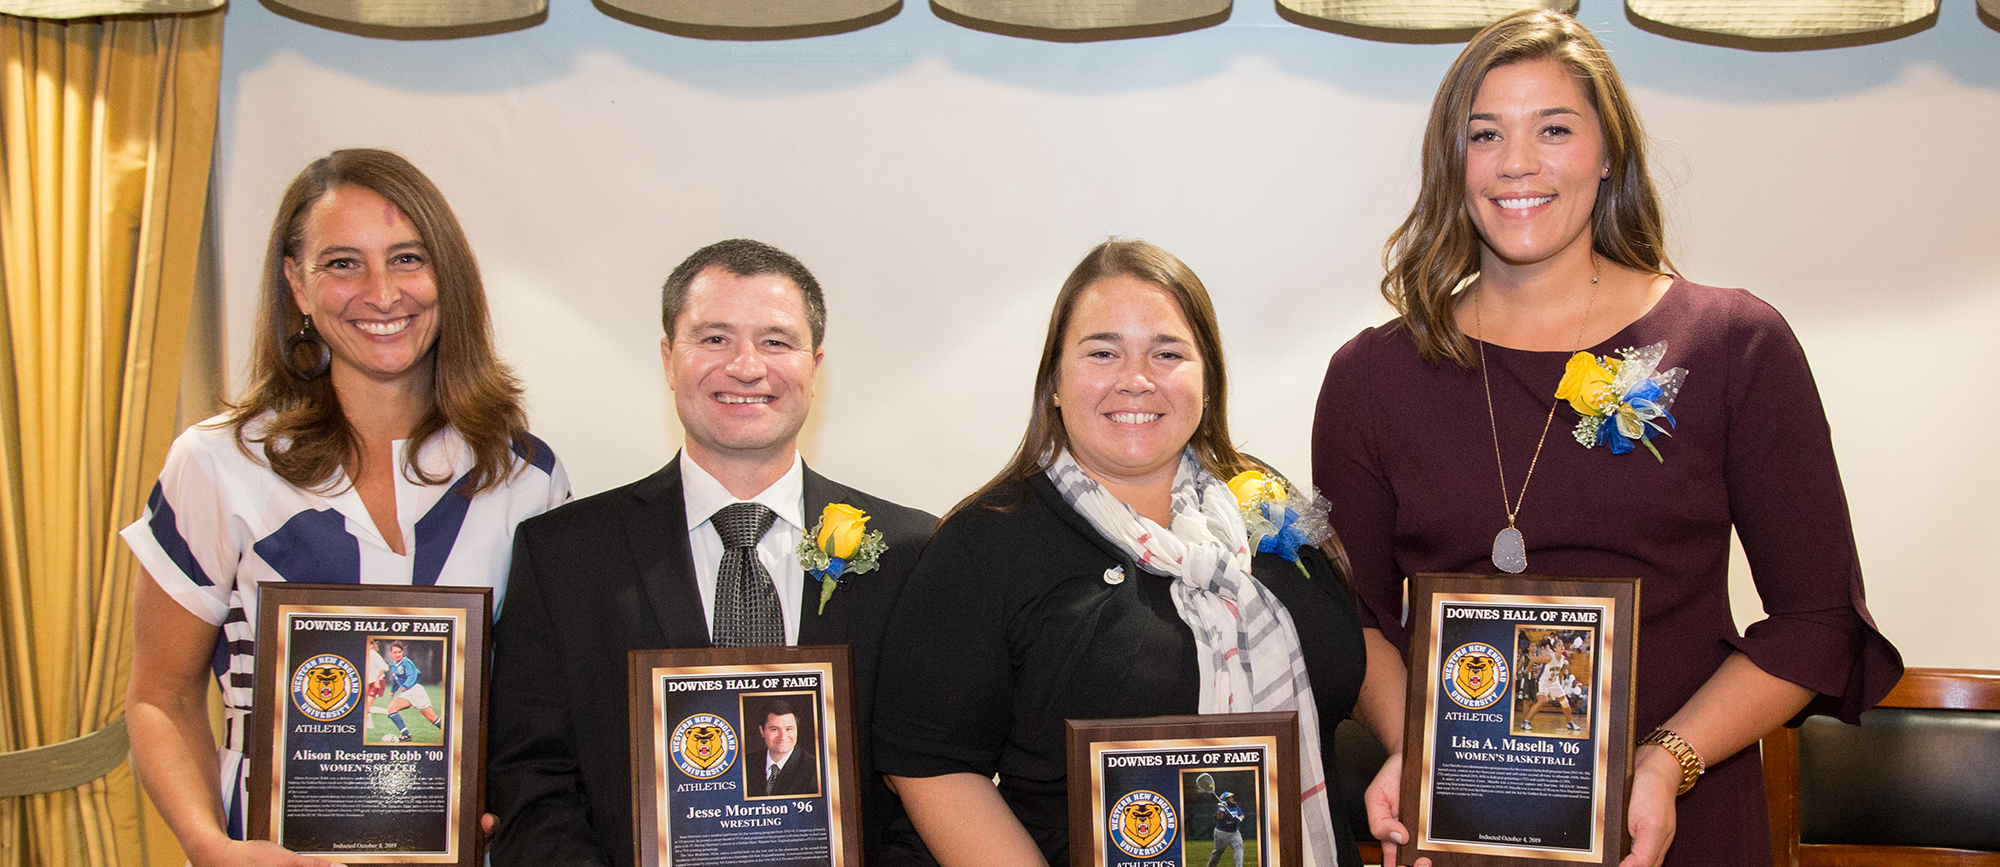 From Left: Alison (Reseigne) Robb '00 (women's soccer), Jesse Morrison '96 (wrestling), Tara (Cushman) Amato '06 (women's lacrosse) & Lisa (Masella) Saunders '06 (women's basketball) were inducted into the Downes Athletic Hall of Fame on Friday night. (Photo by Chris Marion)